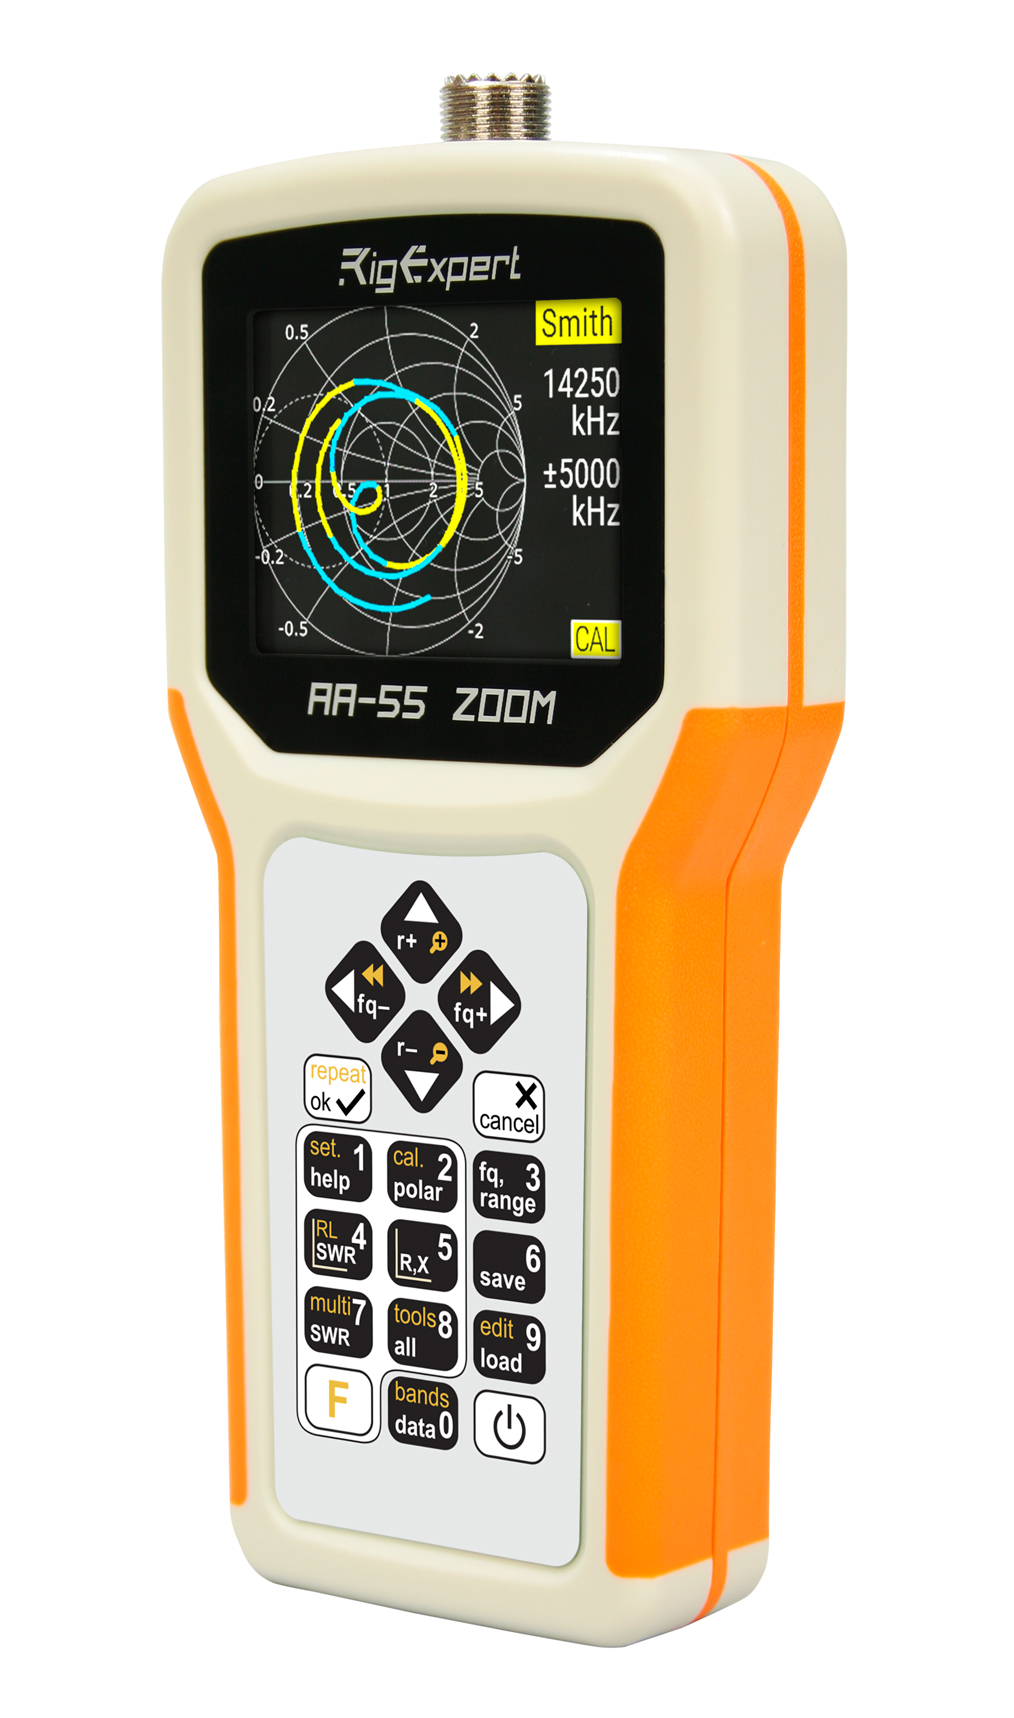 AA-55 ZOOM Antenna Analyzer